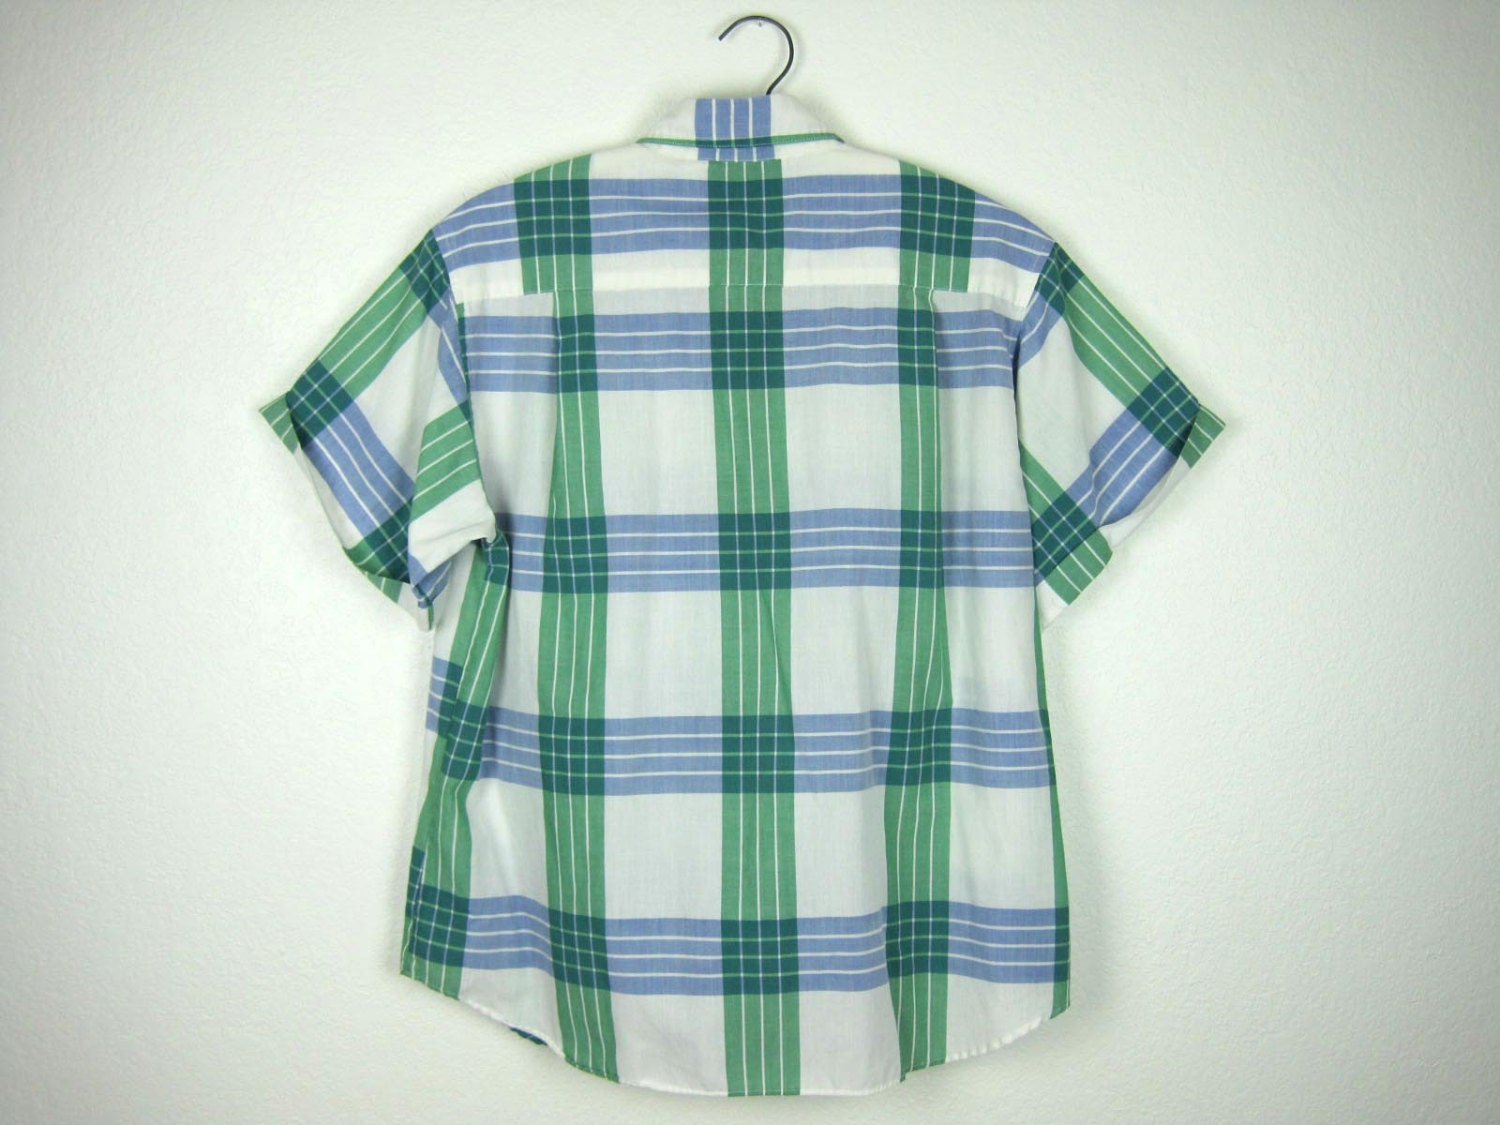 Plaid Short Sleeve Shirt Women 39 S Green White Blue Medium 8